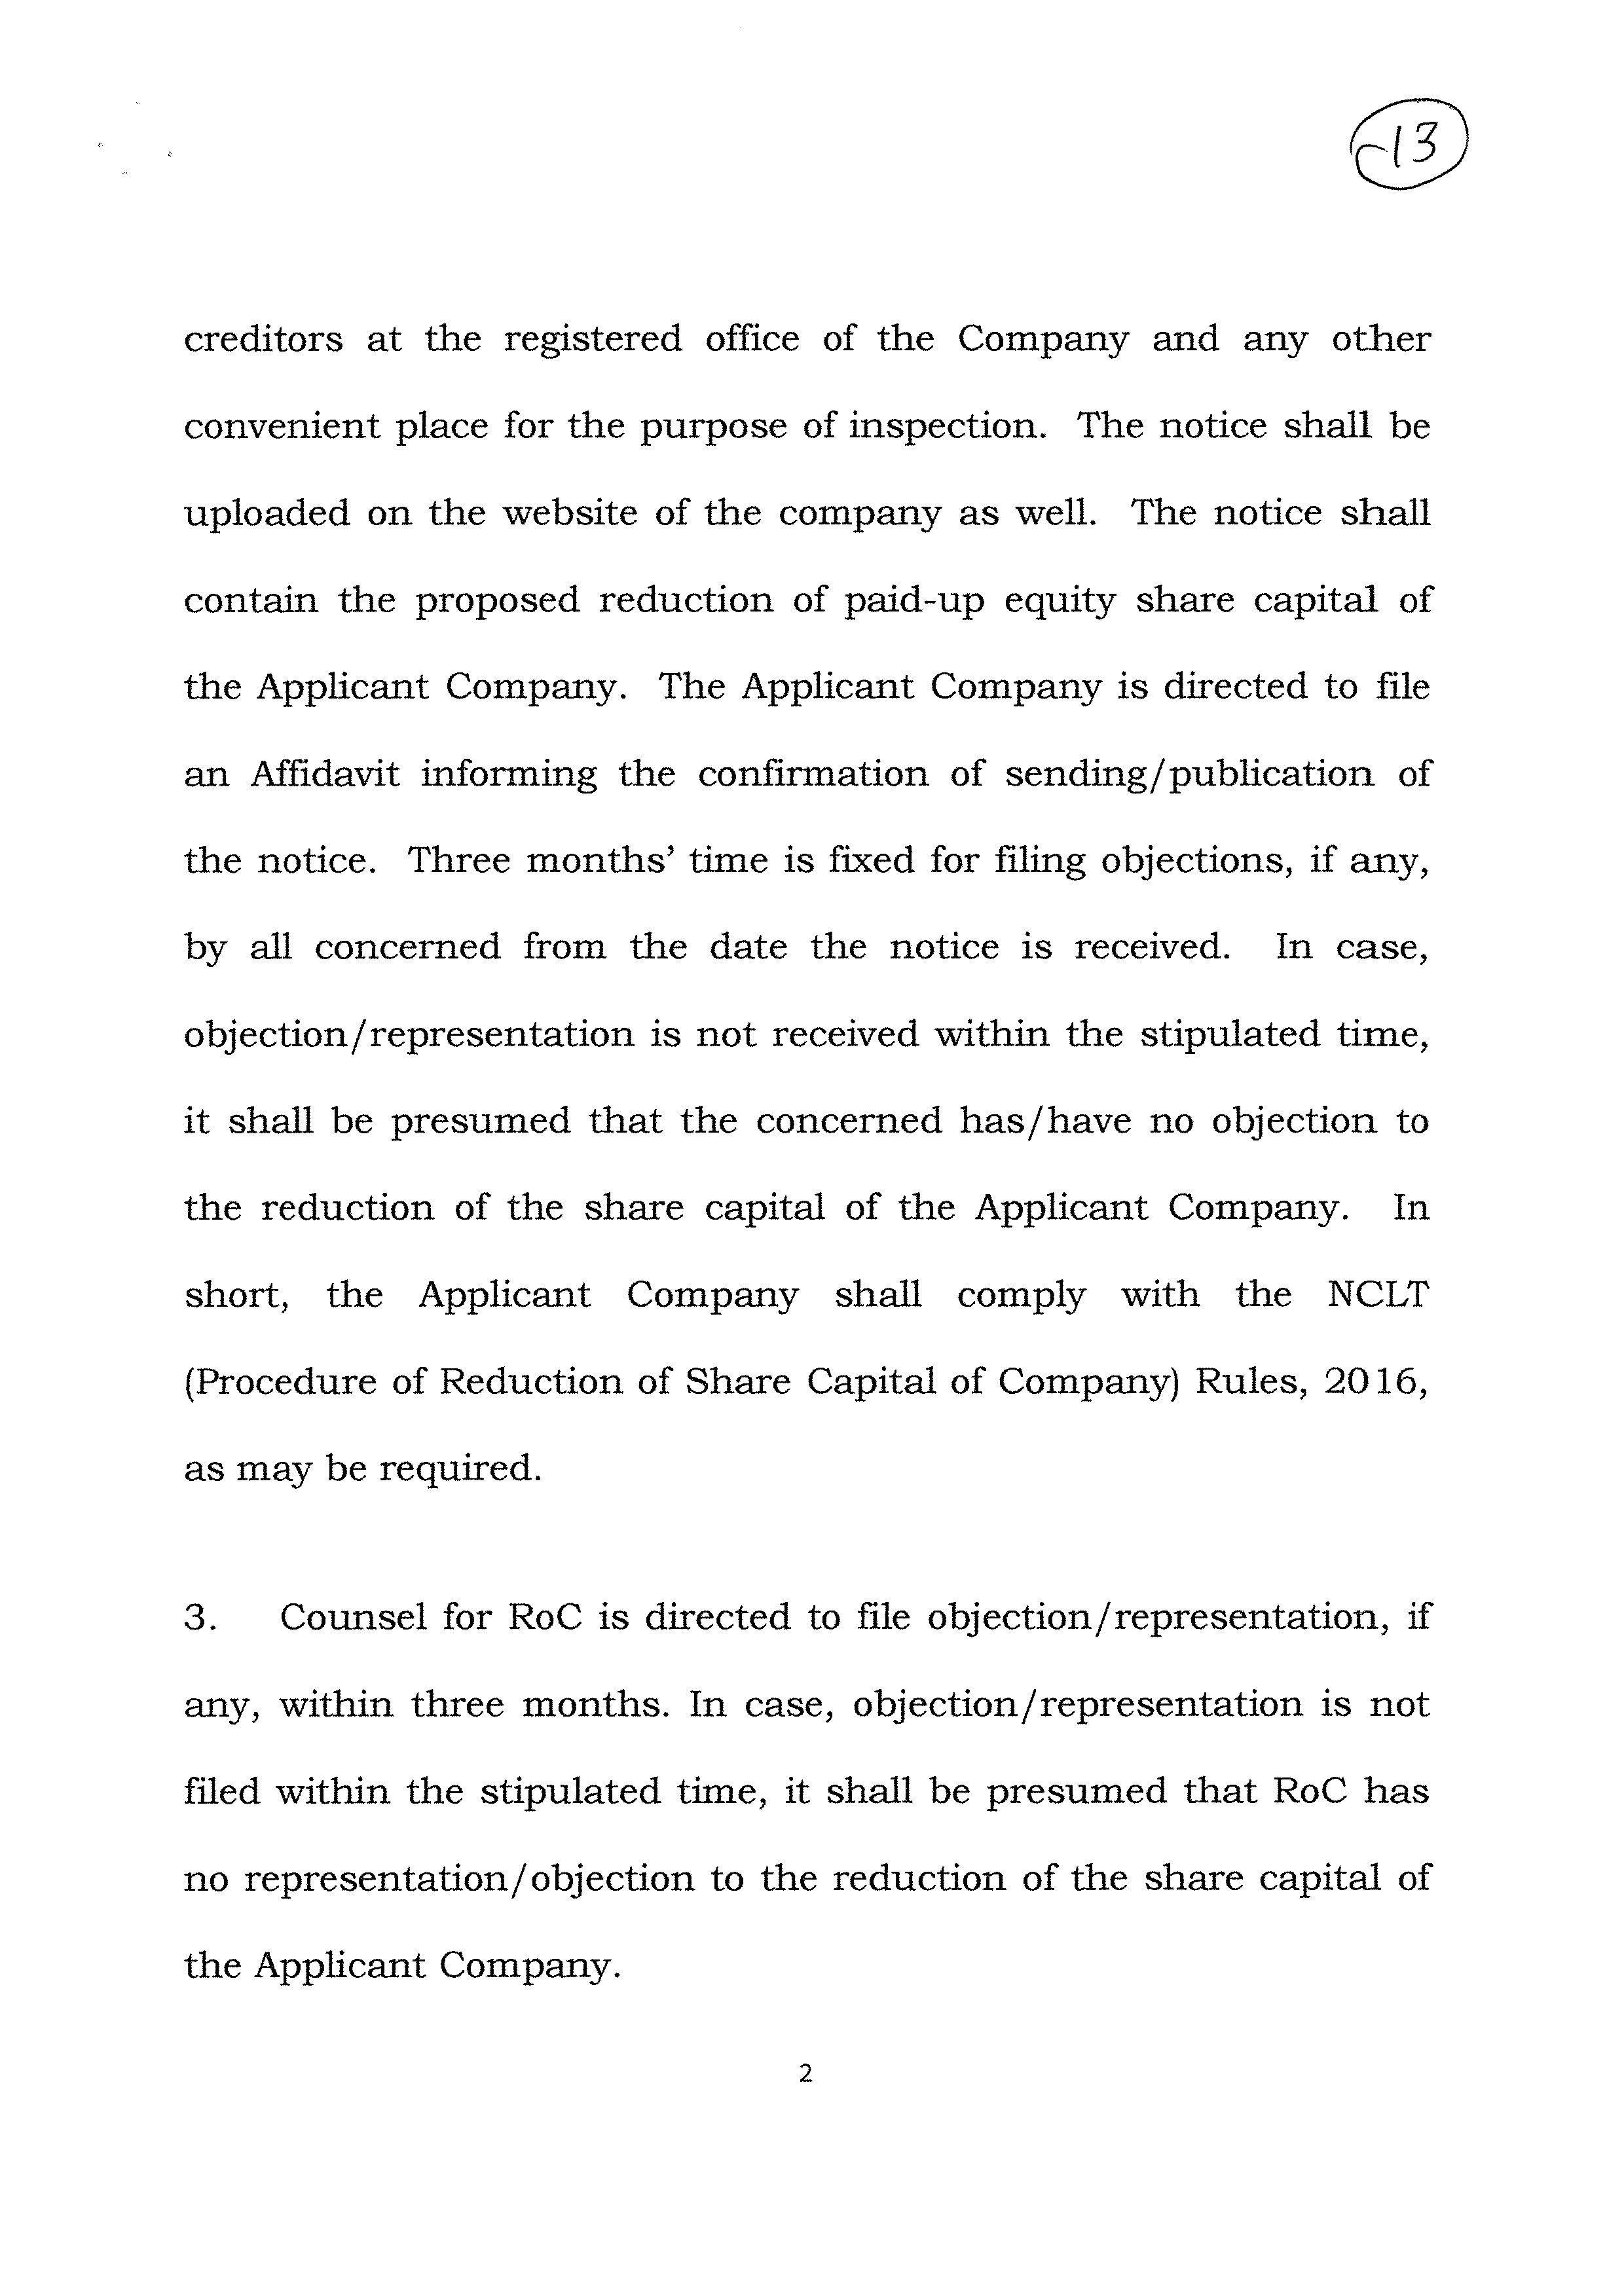 CP 1498 - NCLT Directions - 29012019 _Page_3